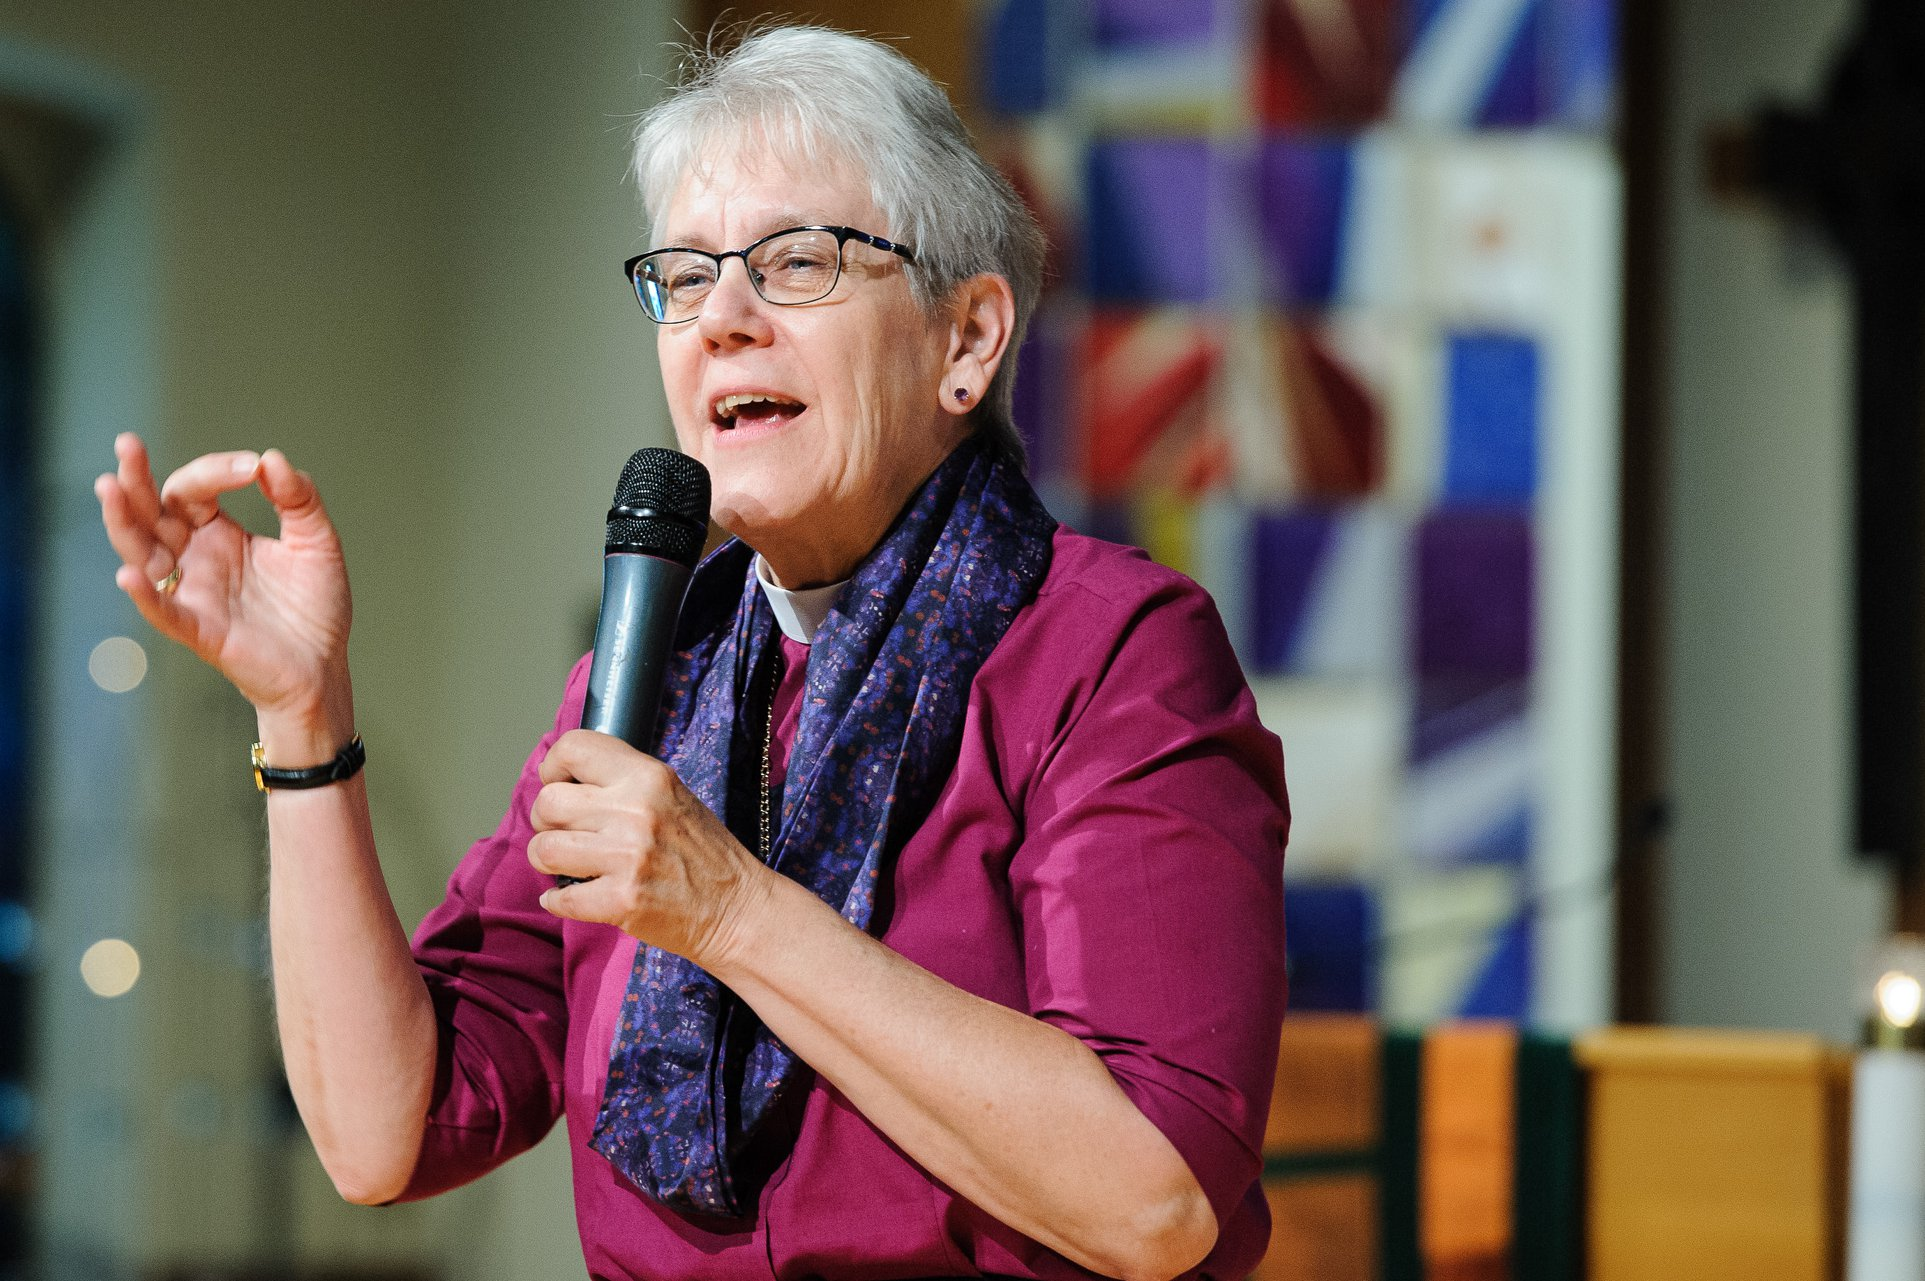 Bishop Linda Nicholls was elected as primate of the Anglican Church of Canada in July 2019